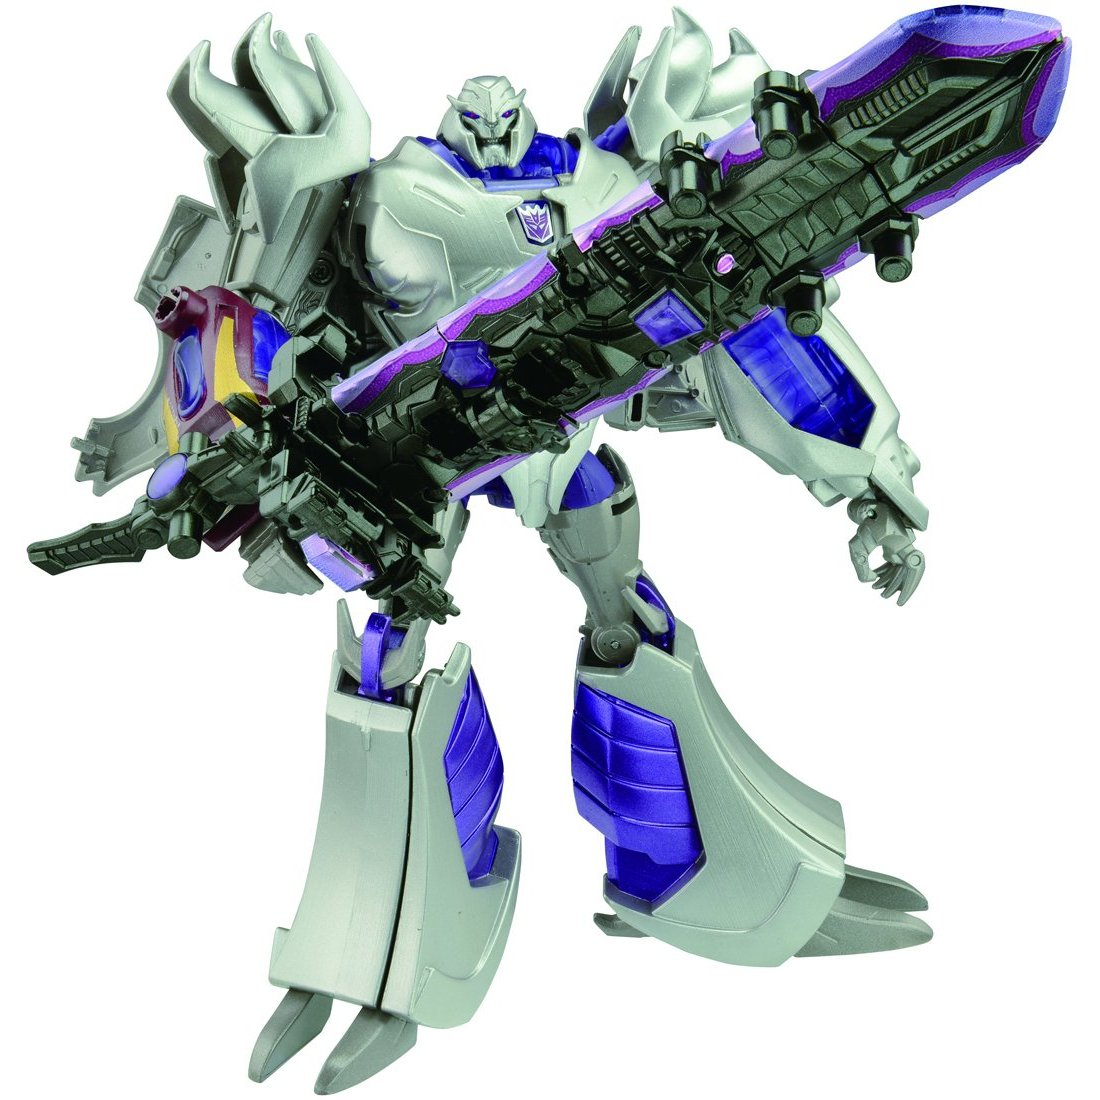 27341755d1358922413-final-battle-megatron-jet-vehicon-general-71-2bsqd9z-2bul_aa1100_